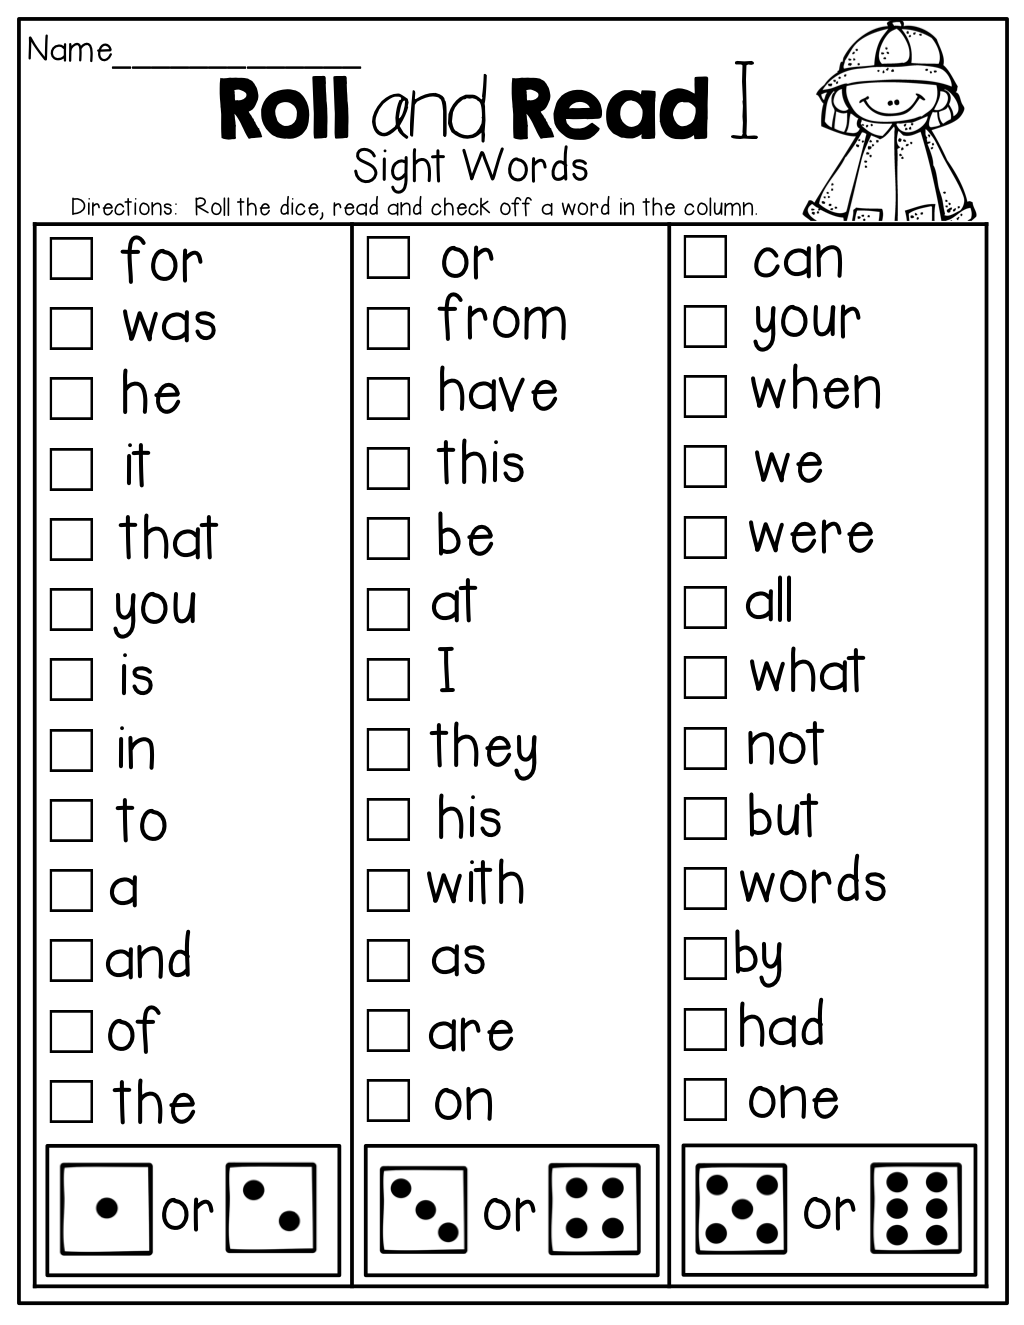 Worksheet ~ First Grade Words To Know 1St For Writing With